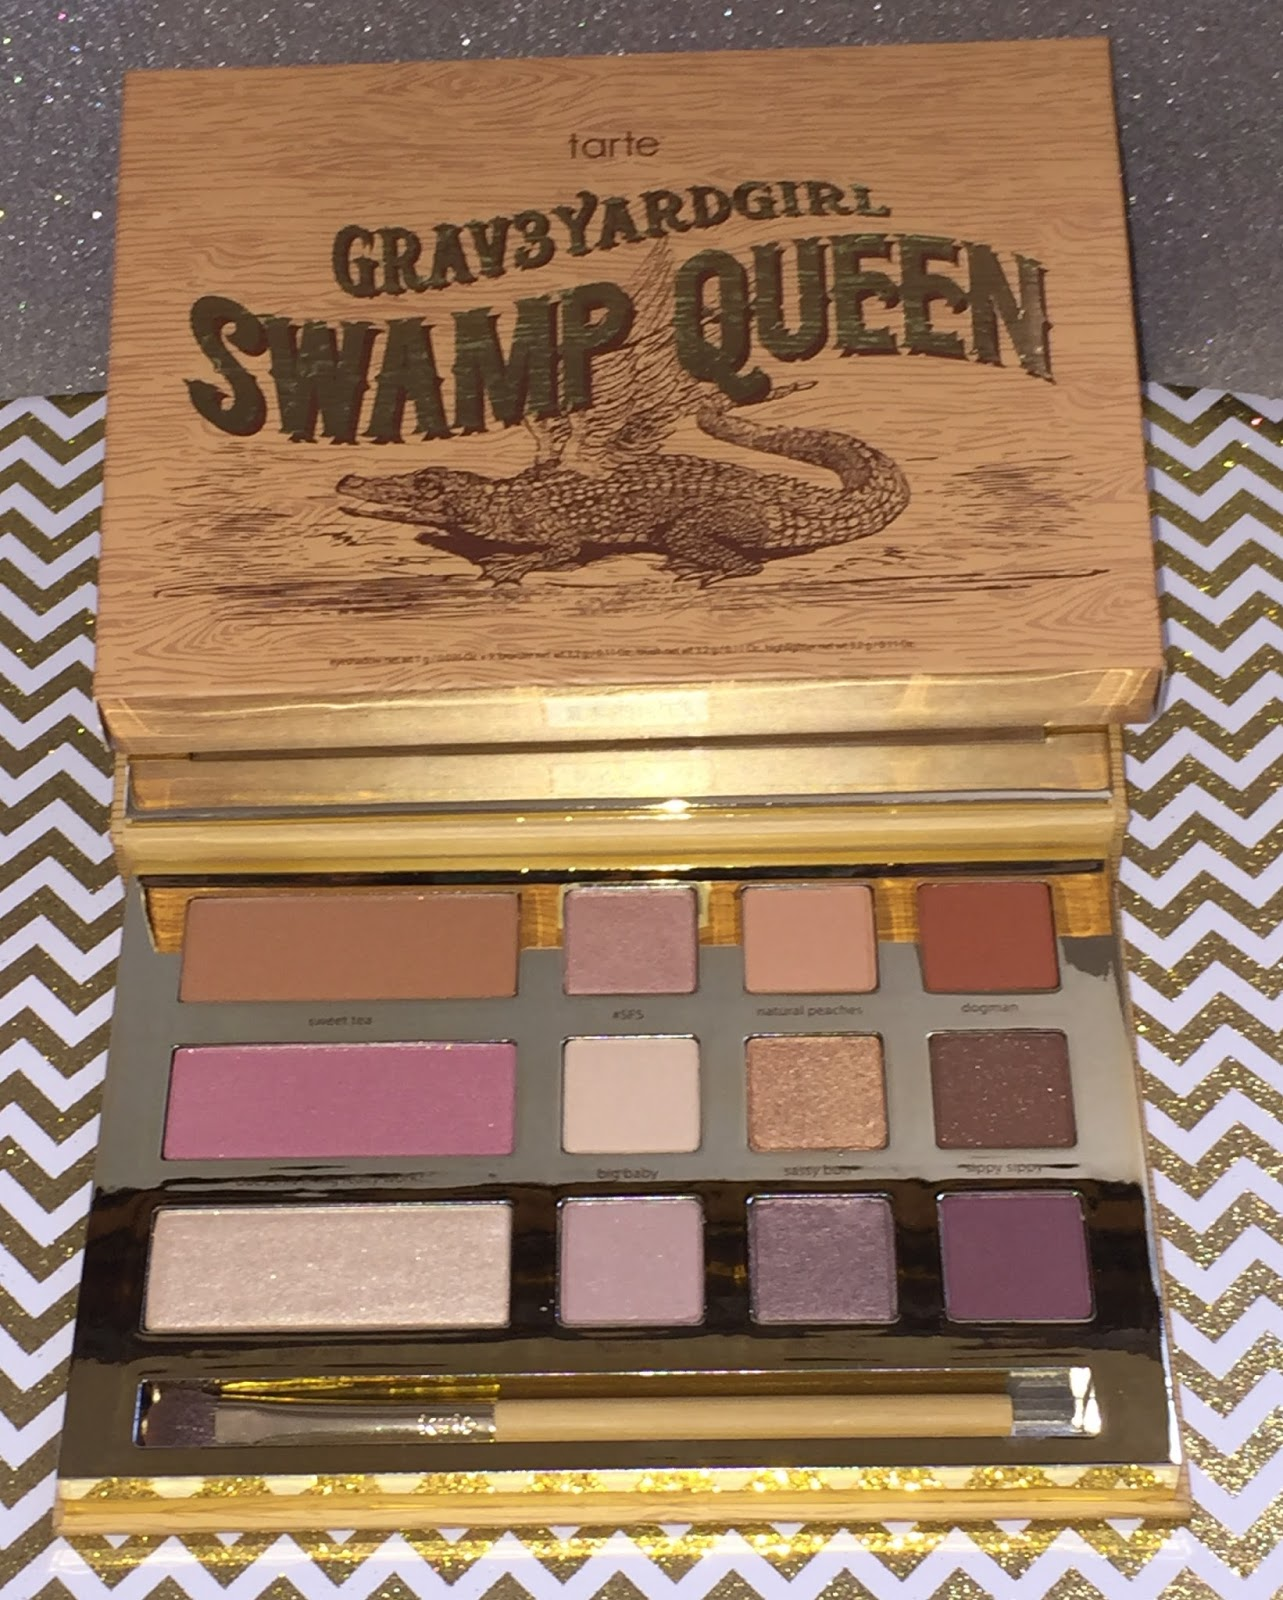 super glam glam tarte grav3yardgirl swamp queen eye cheek palette. Black Bedroom Furniture Sets. Home Design Ideas